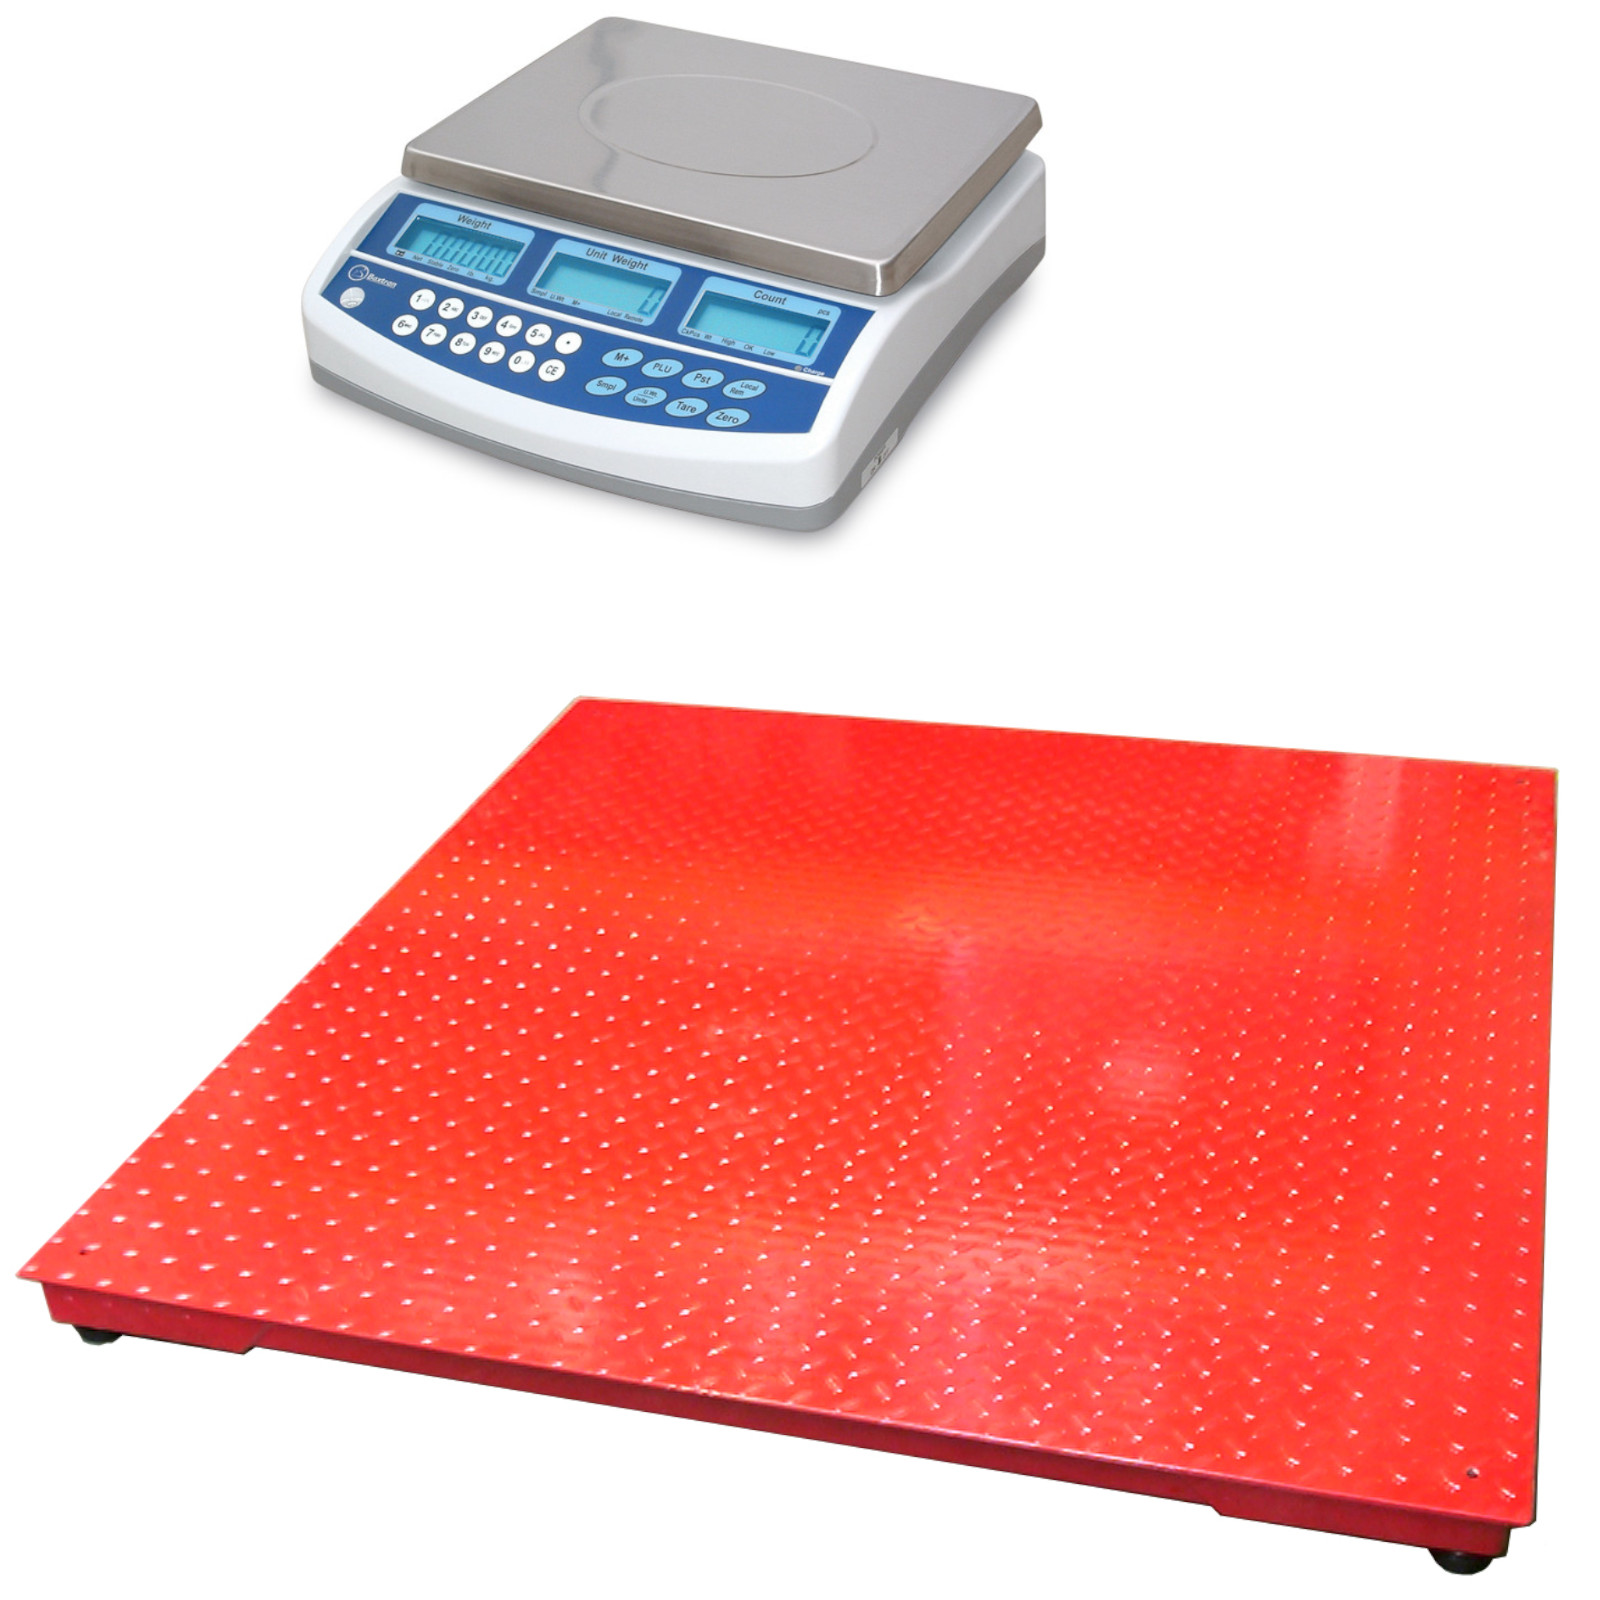 CSG BCD DUAL SCALE REMOTE PLATFORM COUNTING SYSTEM | weighingscales.com